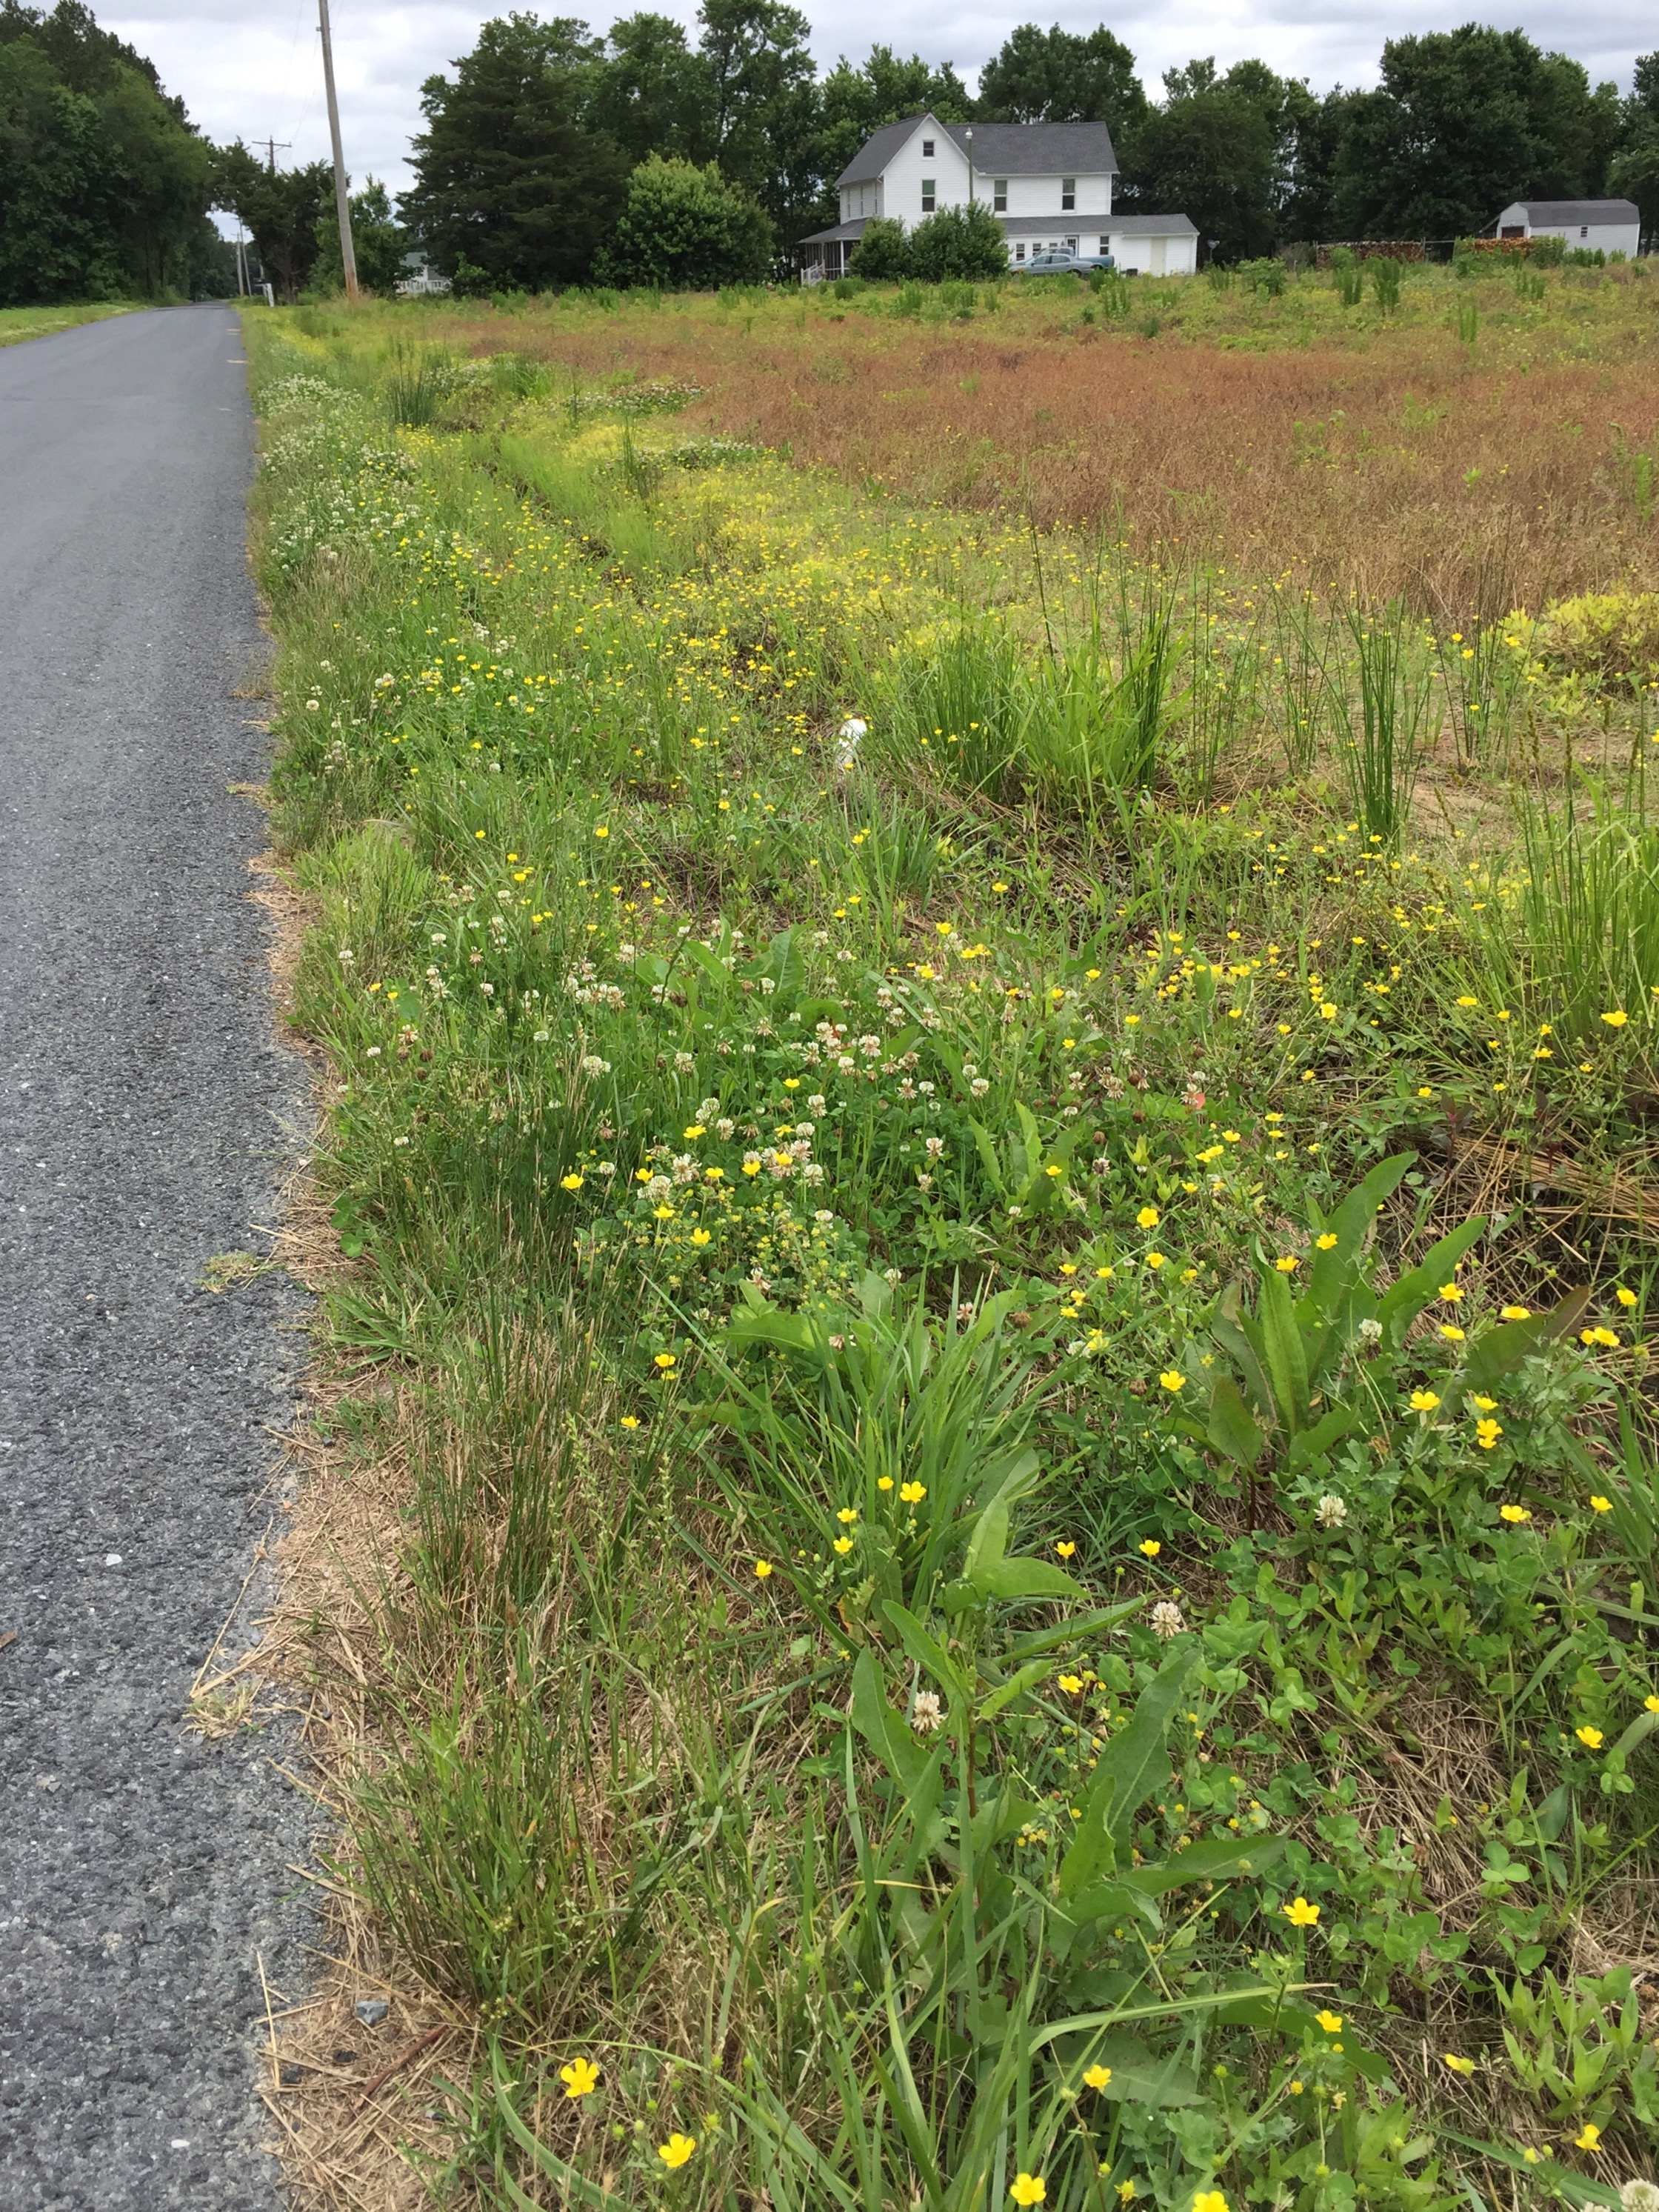 I want to remember the simple things, like wild flowers all along the narrow, shallow ditches. Bike riding in the country is a constant reminder of the importance of farming to our nation.